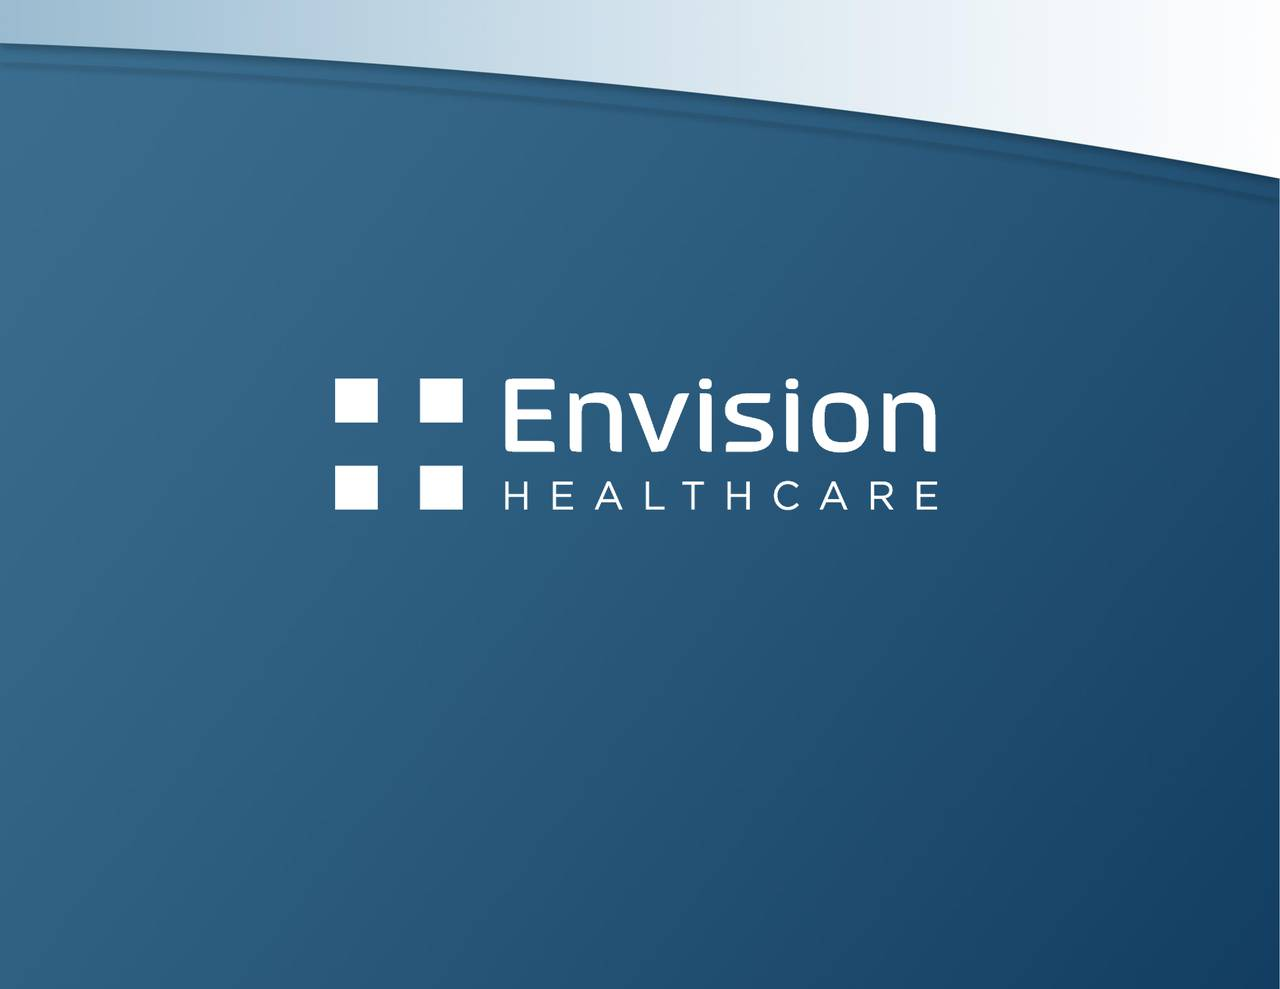 Envision healthcare ipo pricing